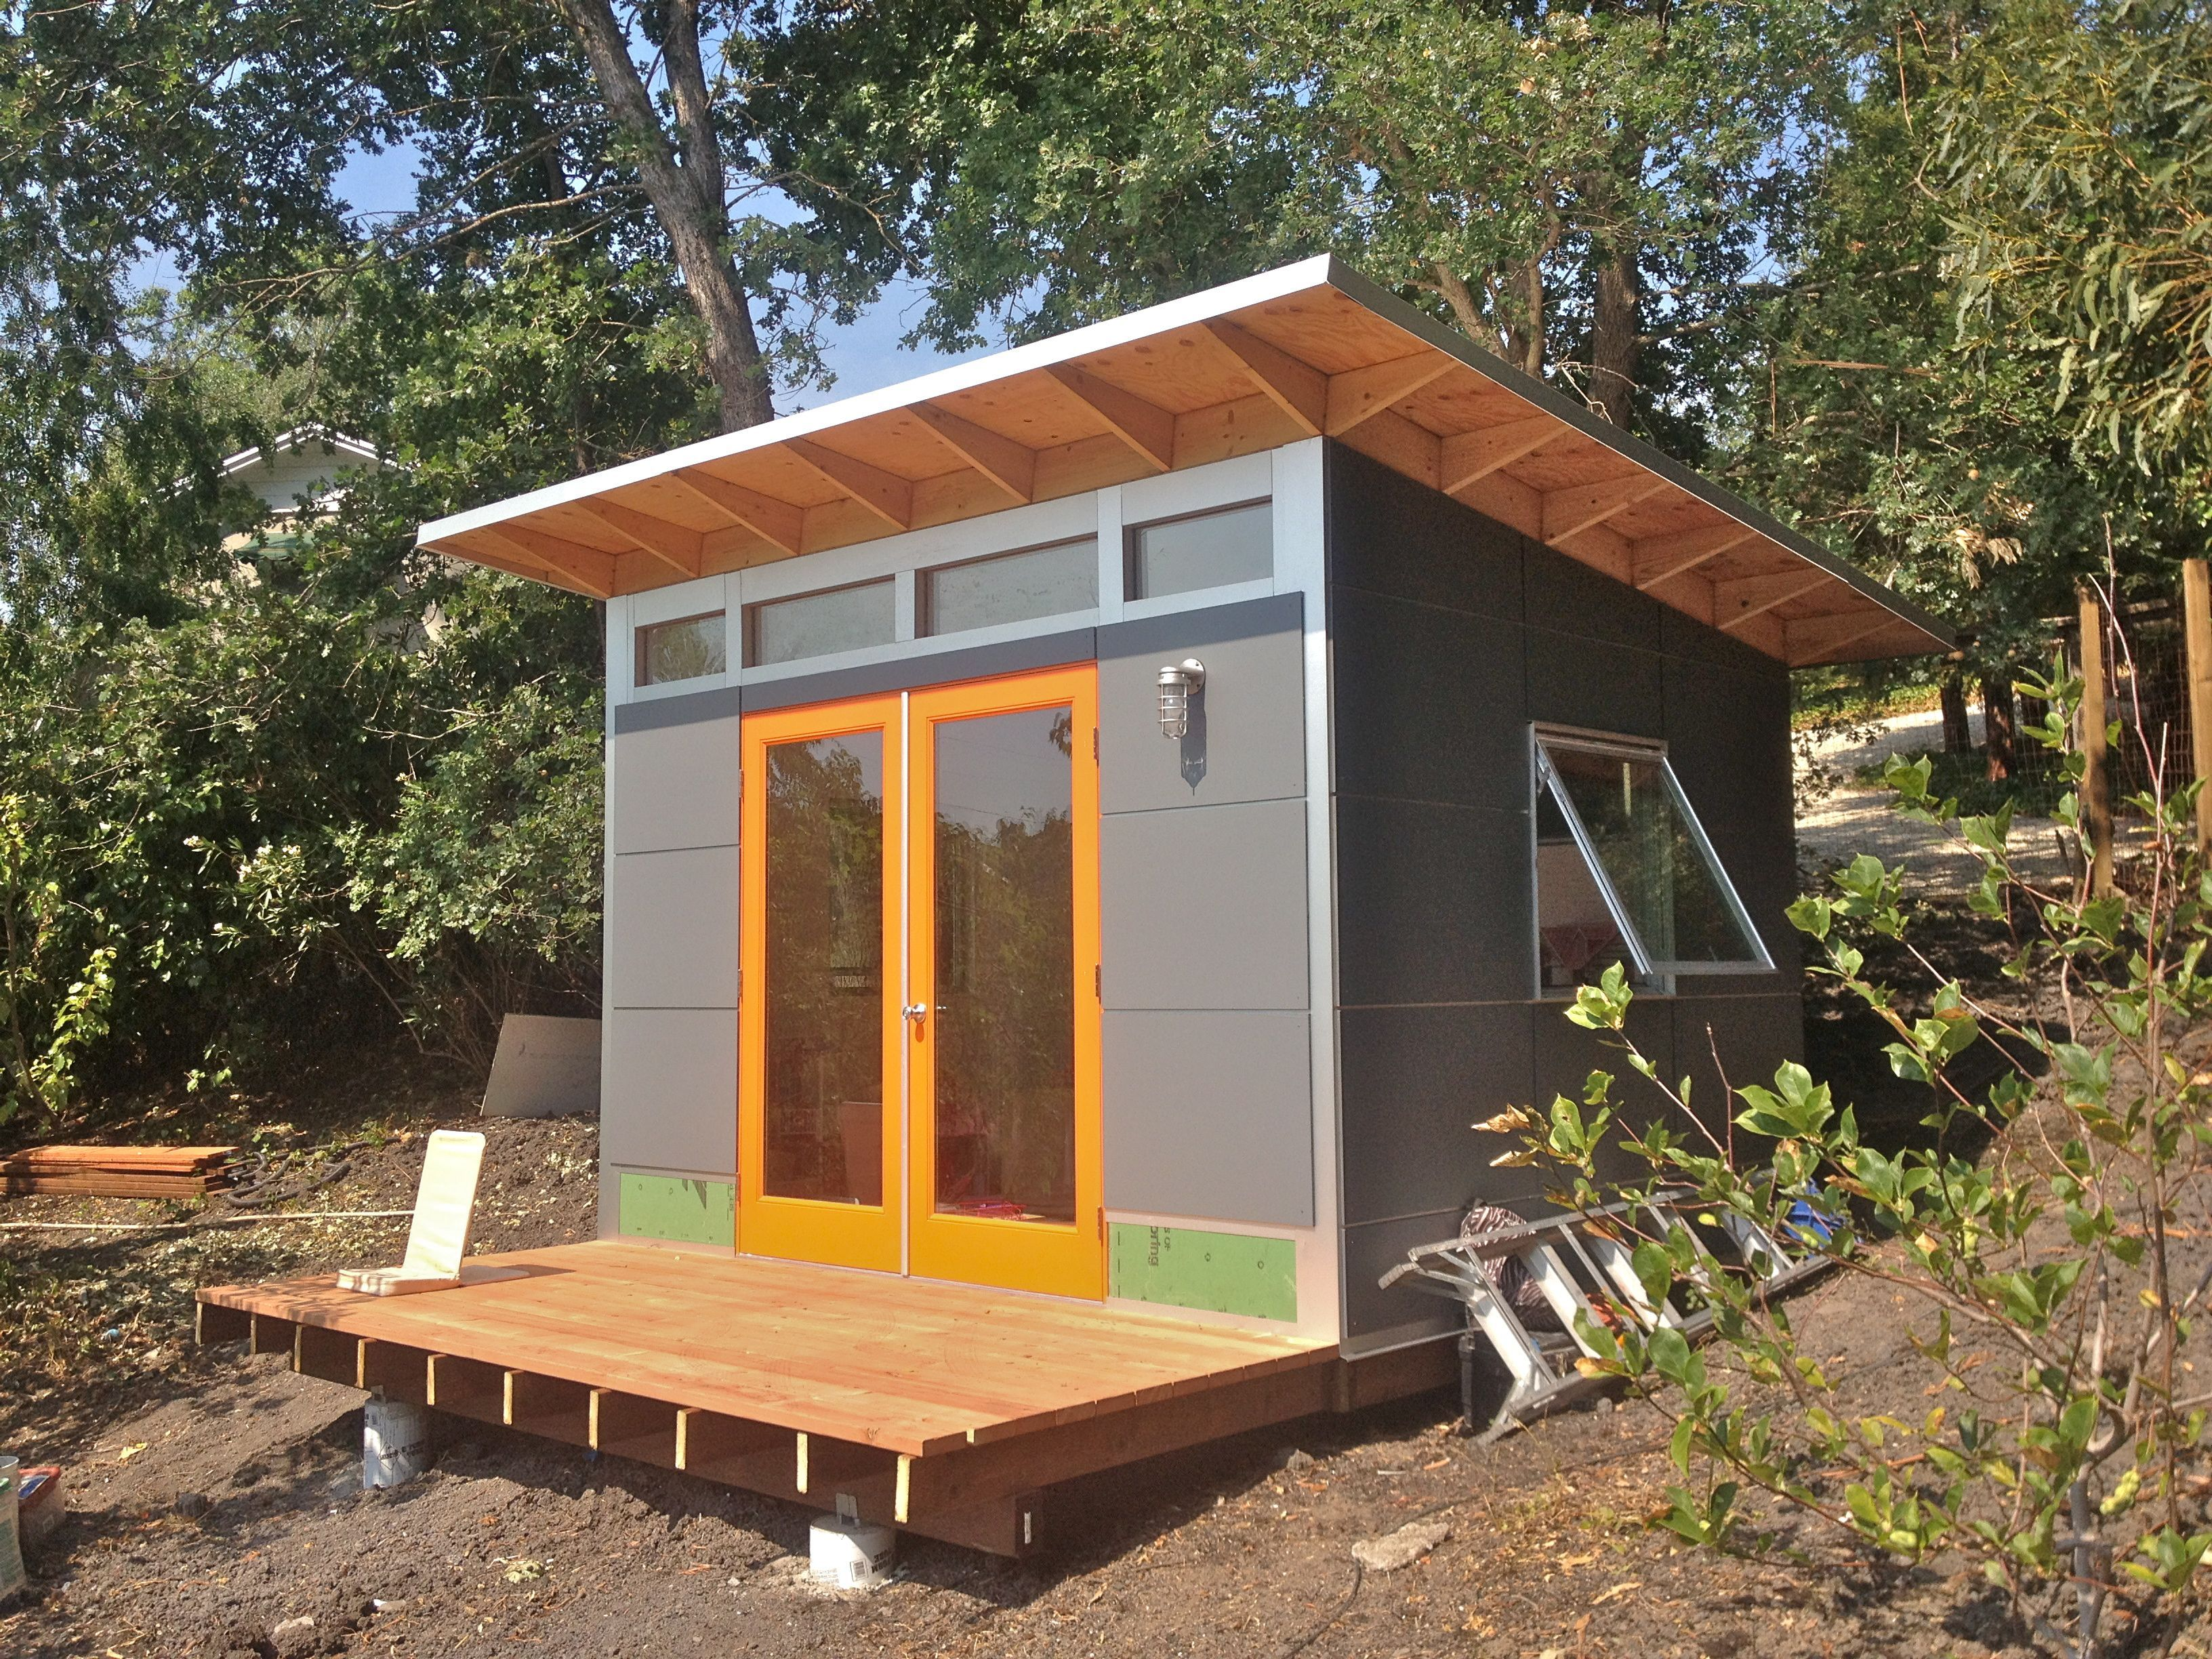 backyard office prefab. design and build your own studio shed with our configurator tool modern prefab sheds are perfect for backyard or custom home office